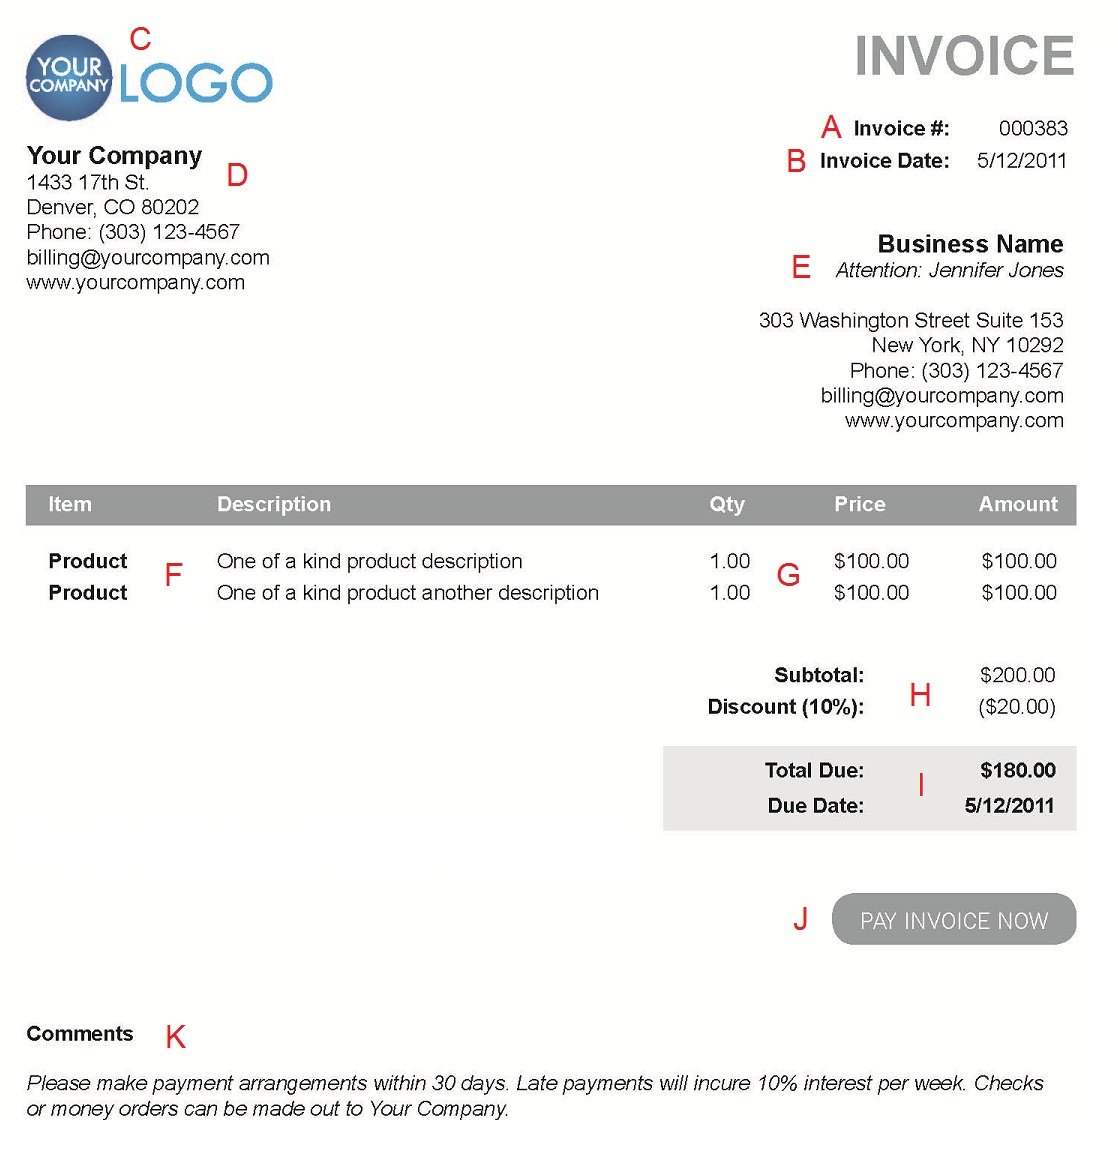 Carterusaus  Sweet The  Different Sections Of An Electronic Payment Invoice With Heavenly A  With Divine Pro Forma Invoice Example Also Express Invoice Software In Addition Invoice Process Flow Chart And Invoice Credit As Well As Freeagent Invoice Additionally Mechanic Invoice Software From Paysimplecom With Carterusaus  Heavenly The  Different Sections Of An Electronic Payment Invoice With Divine A  And Sweet Pro Forma Invoice Example Also Express Invoice Software In Addition Invoice Process Flow Chart From Paysimplecom